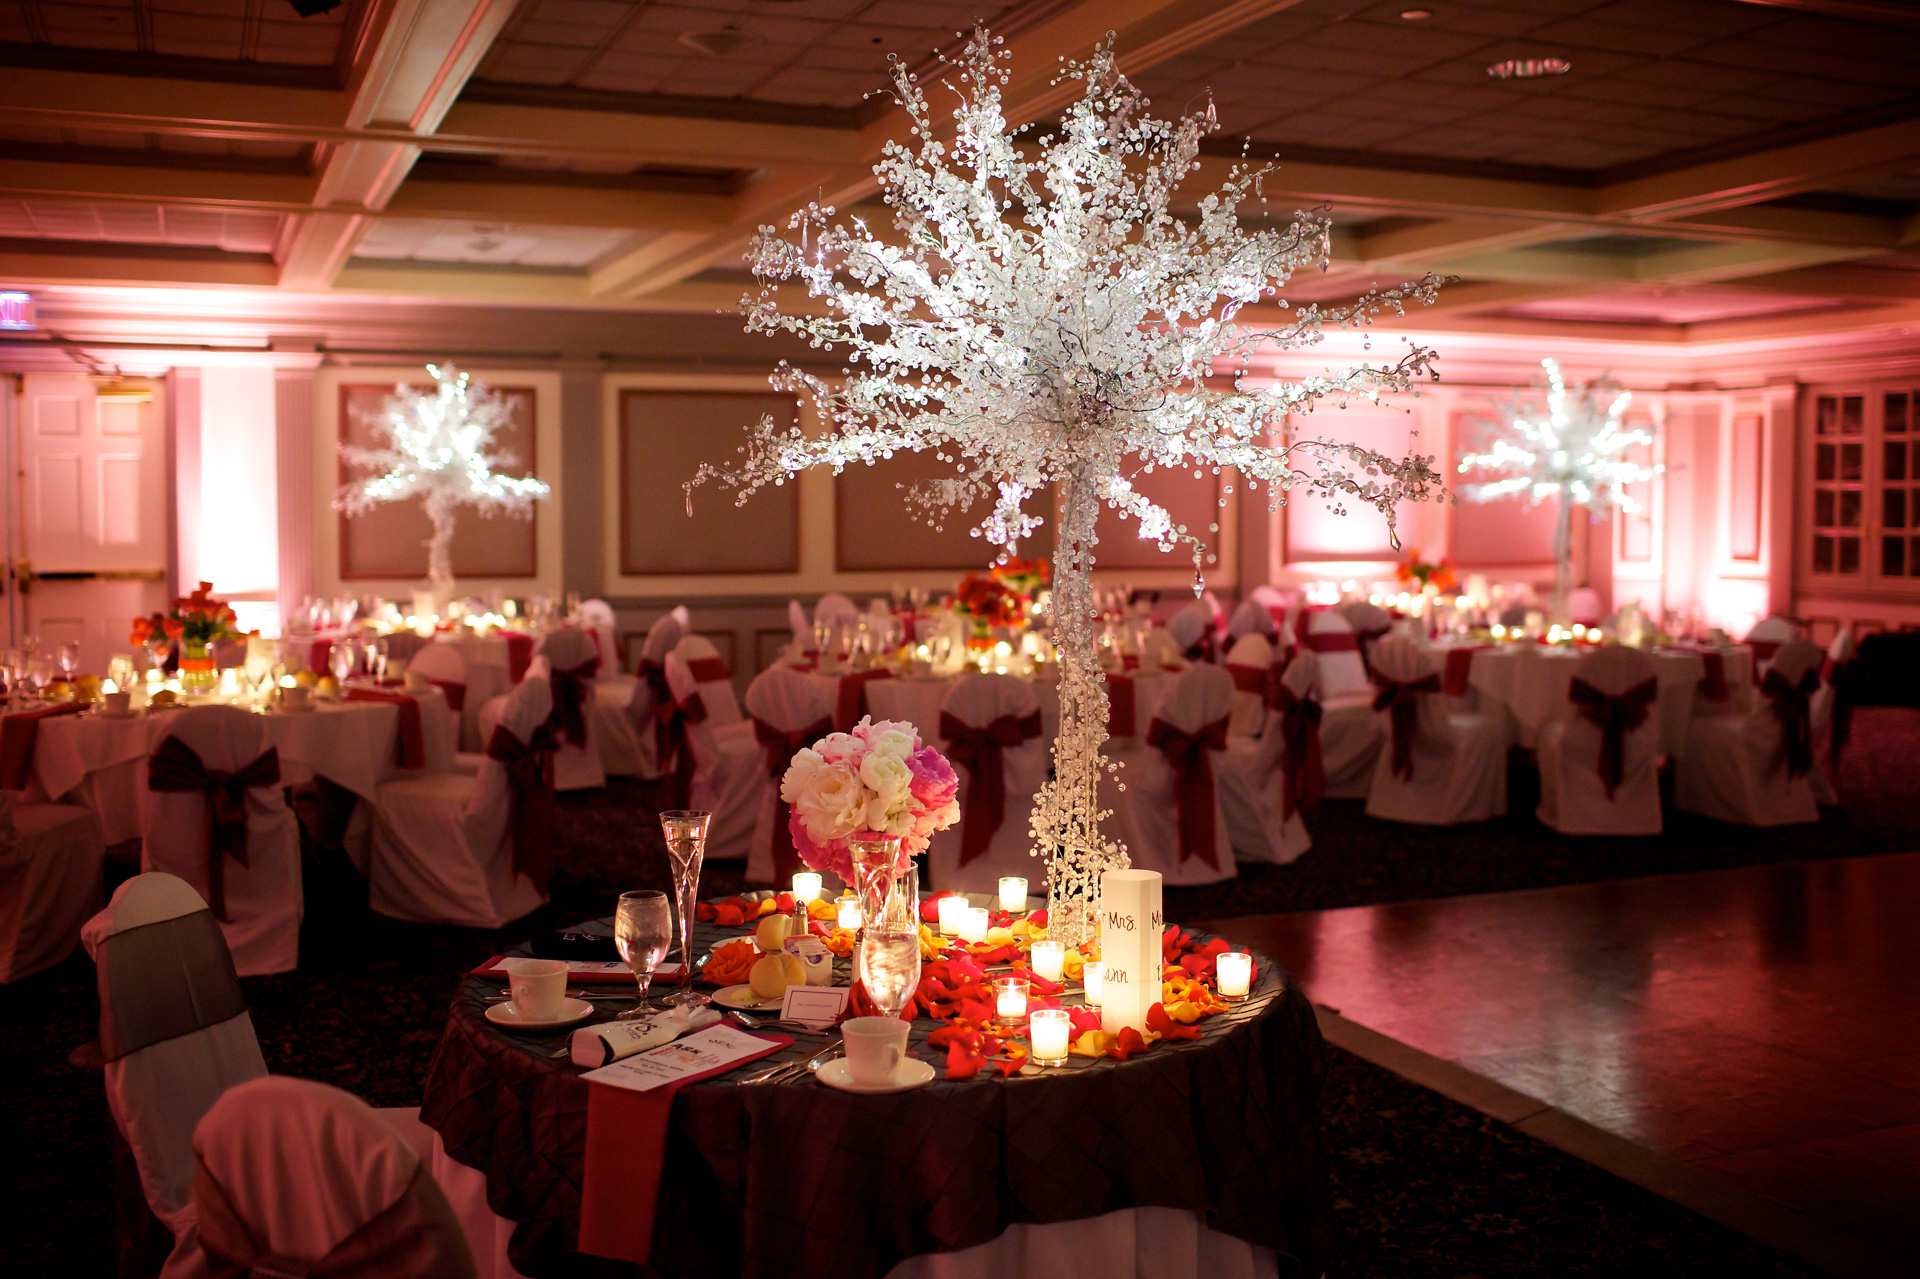 Penn State Wedding Gifts: State College, PA Wedding Venues